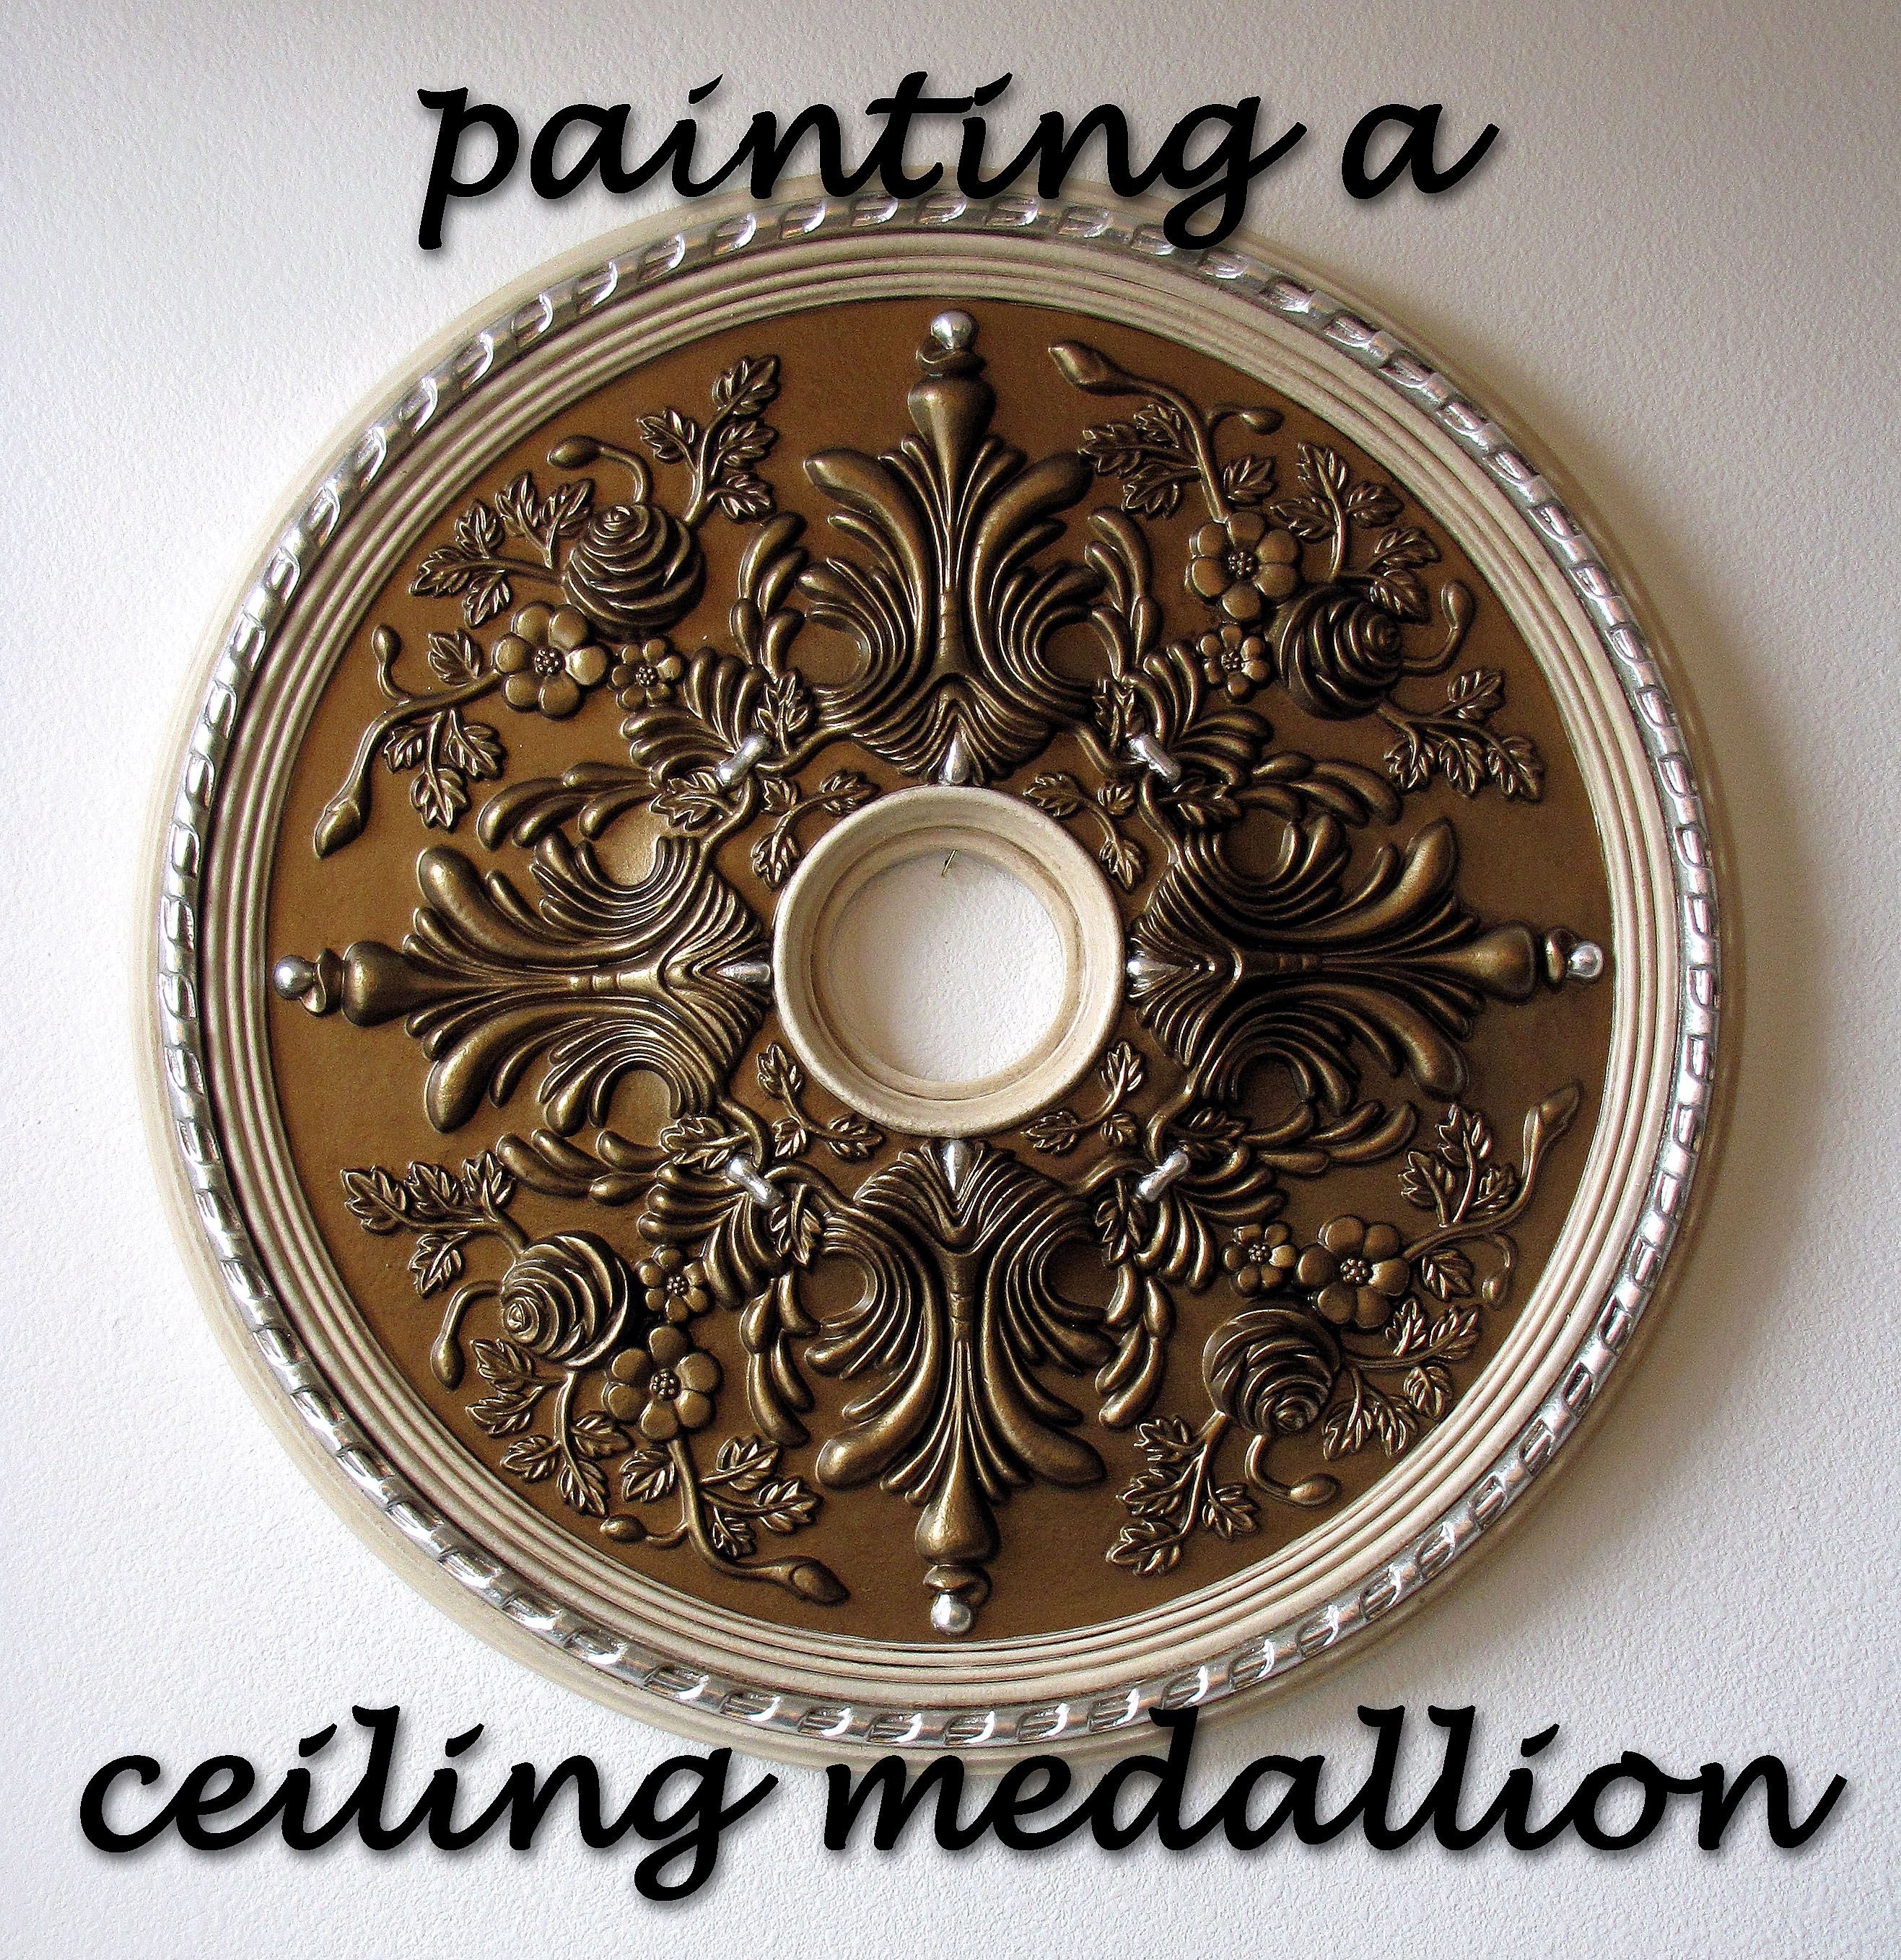 How To Paint A Ceiling Medallion Ceiling Medallions Diy Painted Ceiling Ceiling Medallions